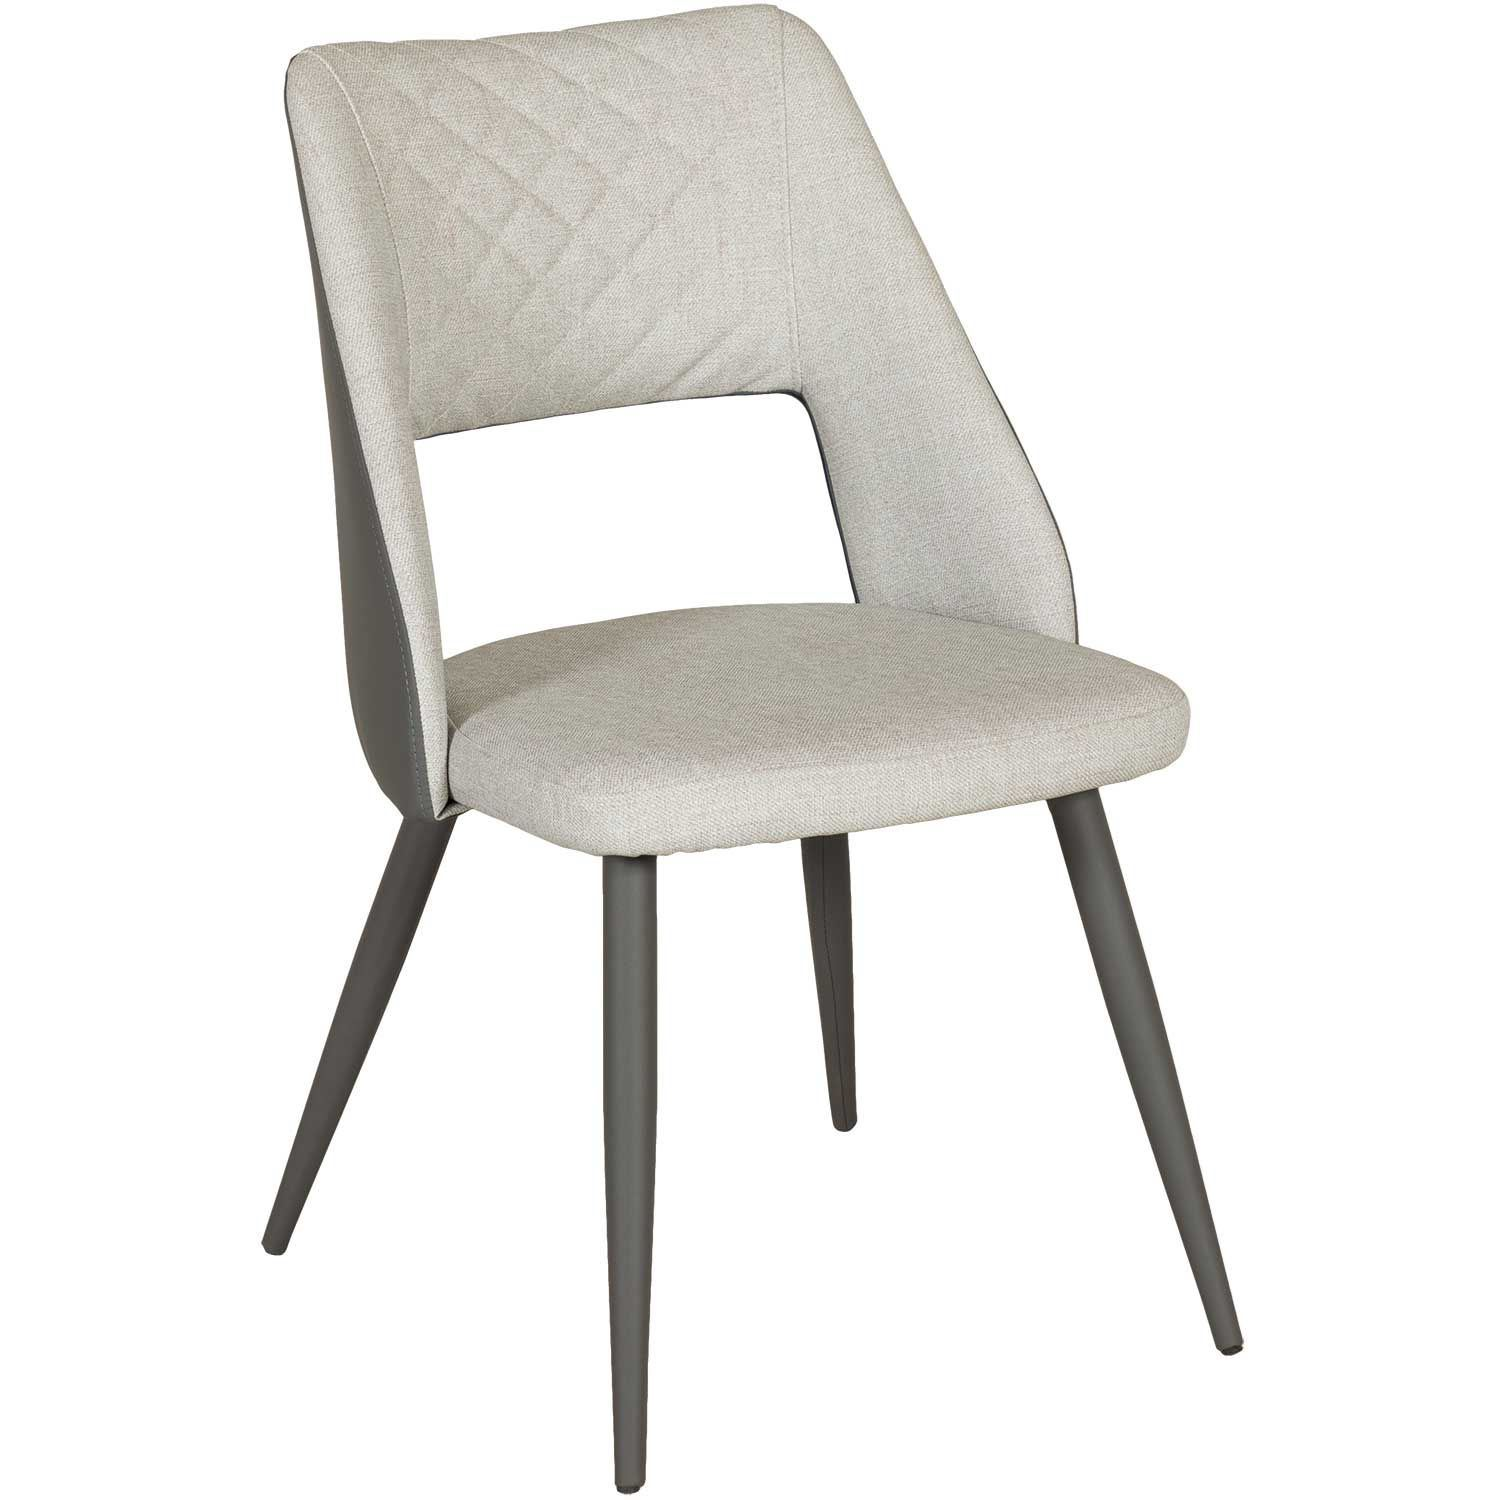 Jila Dining Chair in Gray R956-1C | Cambridge Home | AFW.com